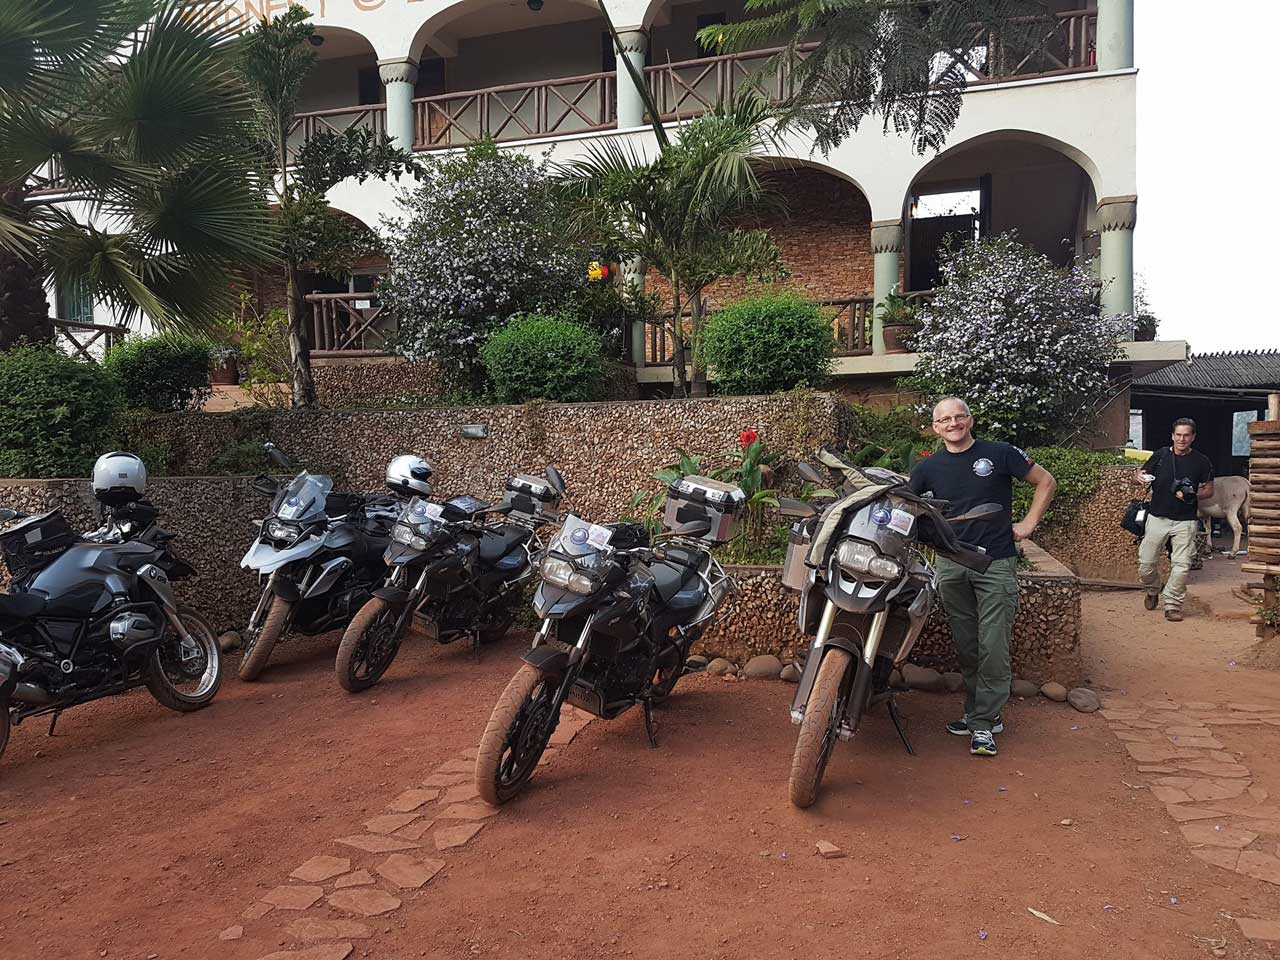 Heart of Africa, Day 5, Motorcycle Tour by Ayres Adventures